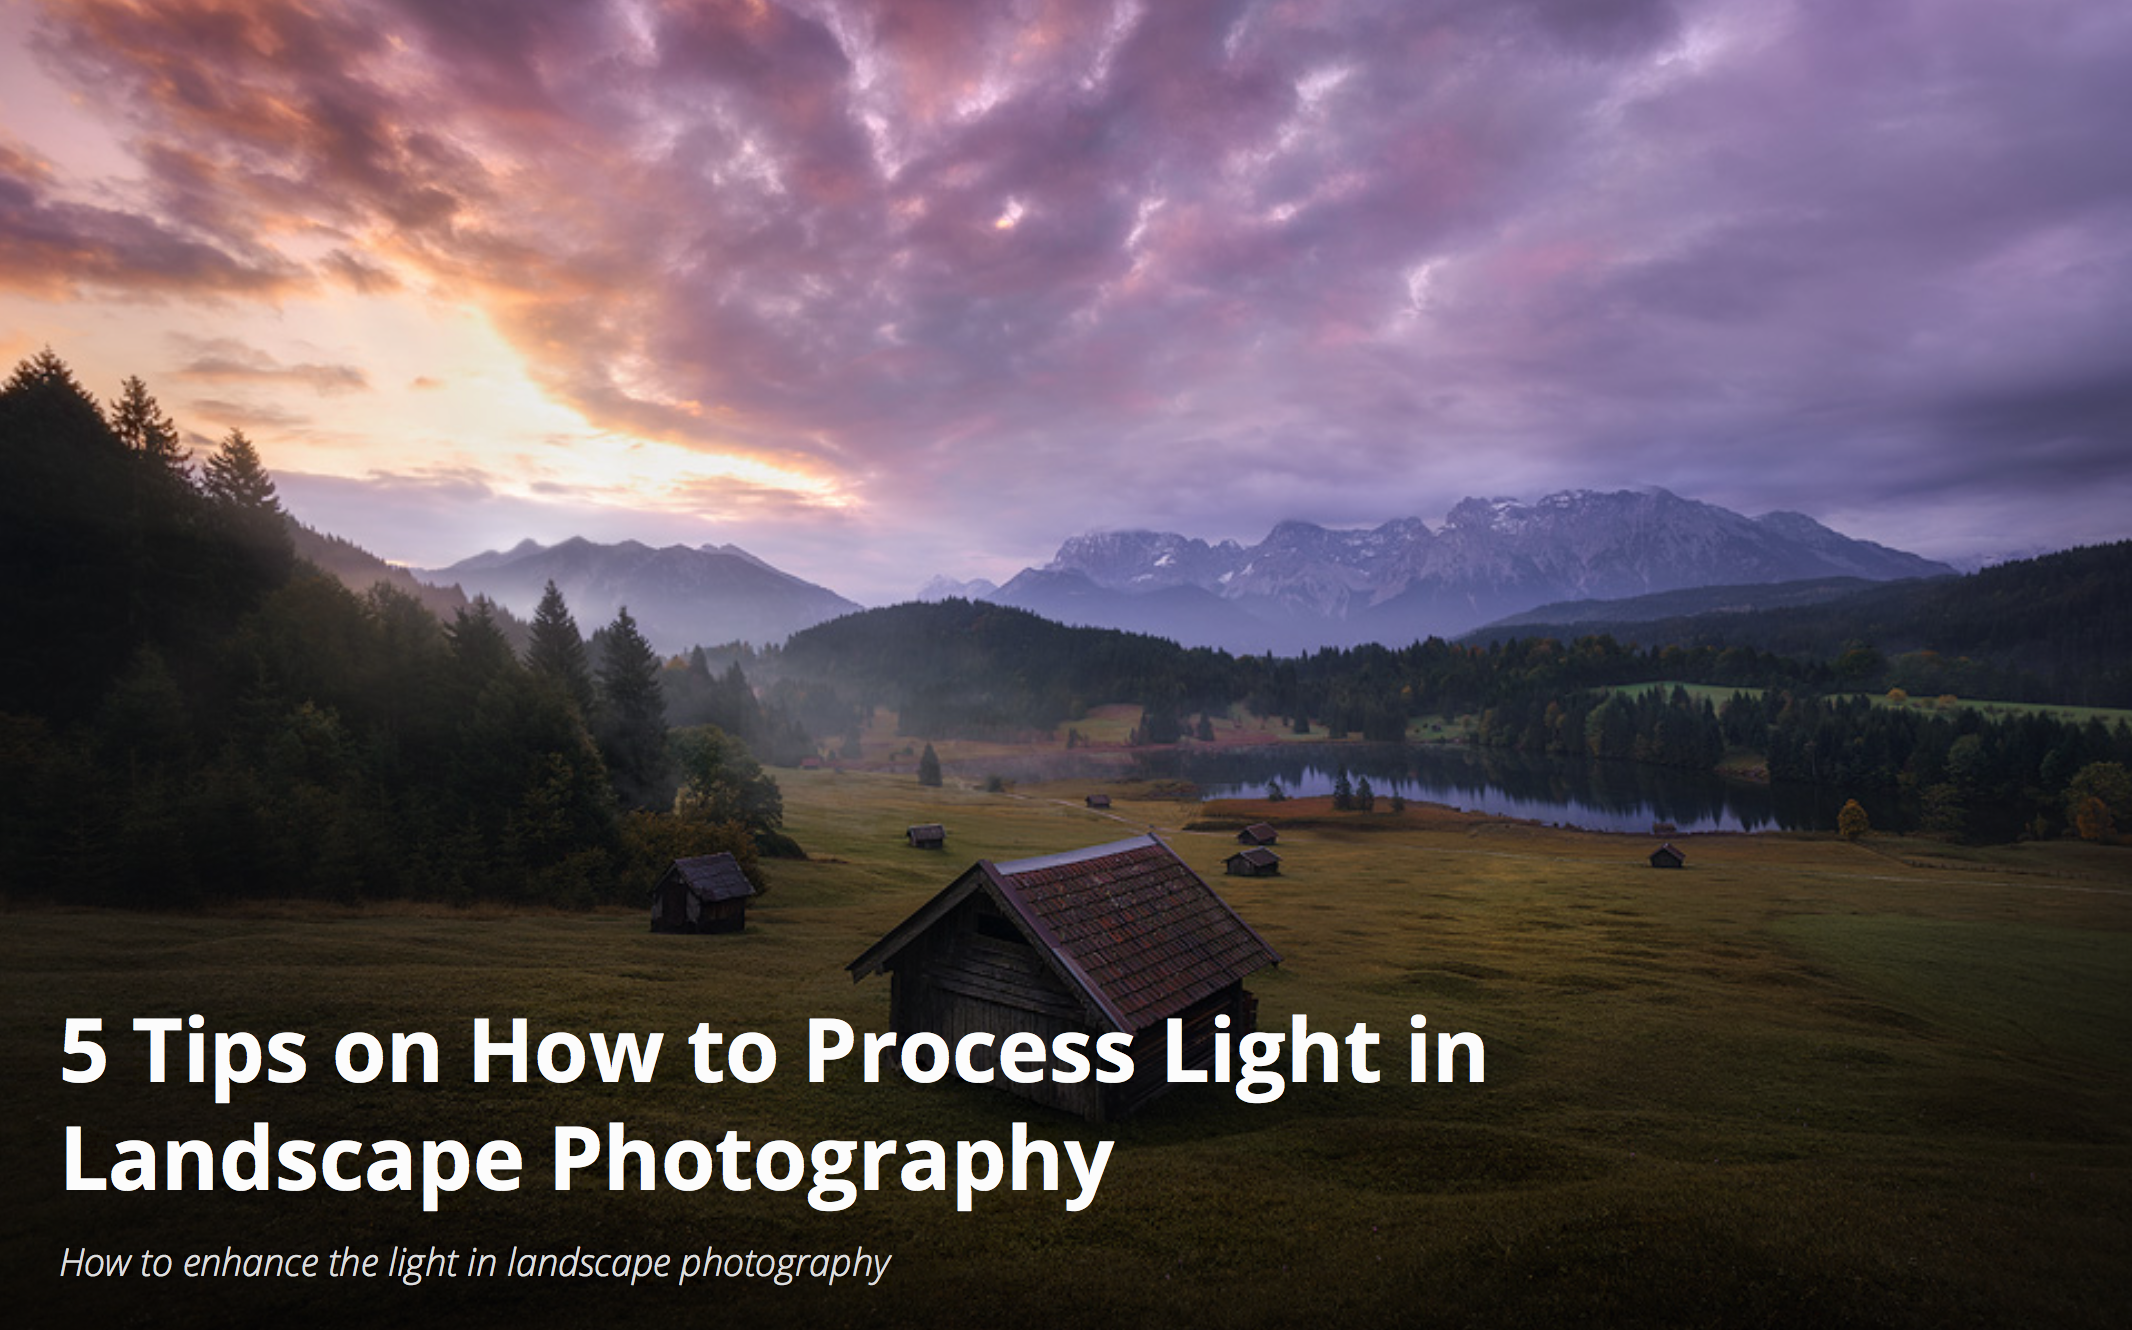 5 tips on working light